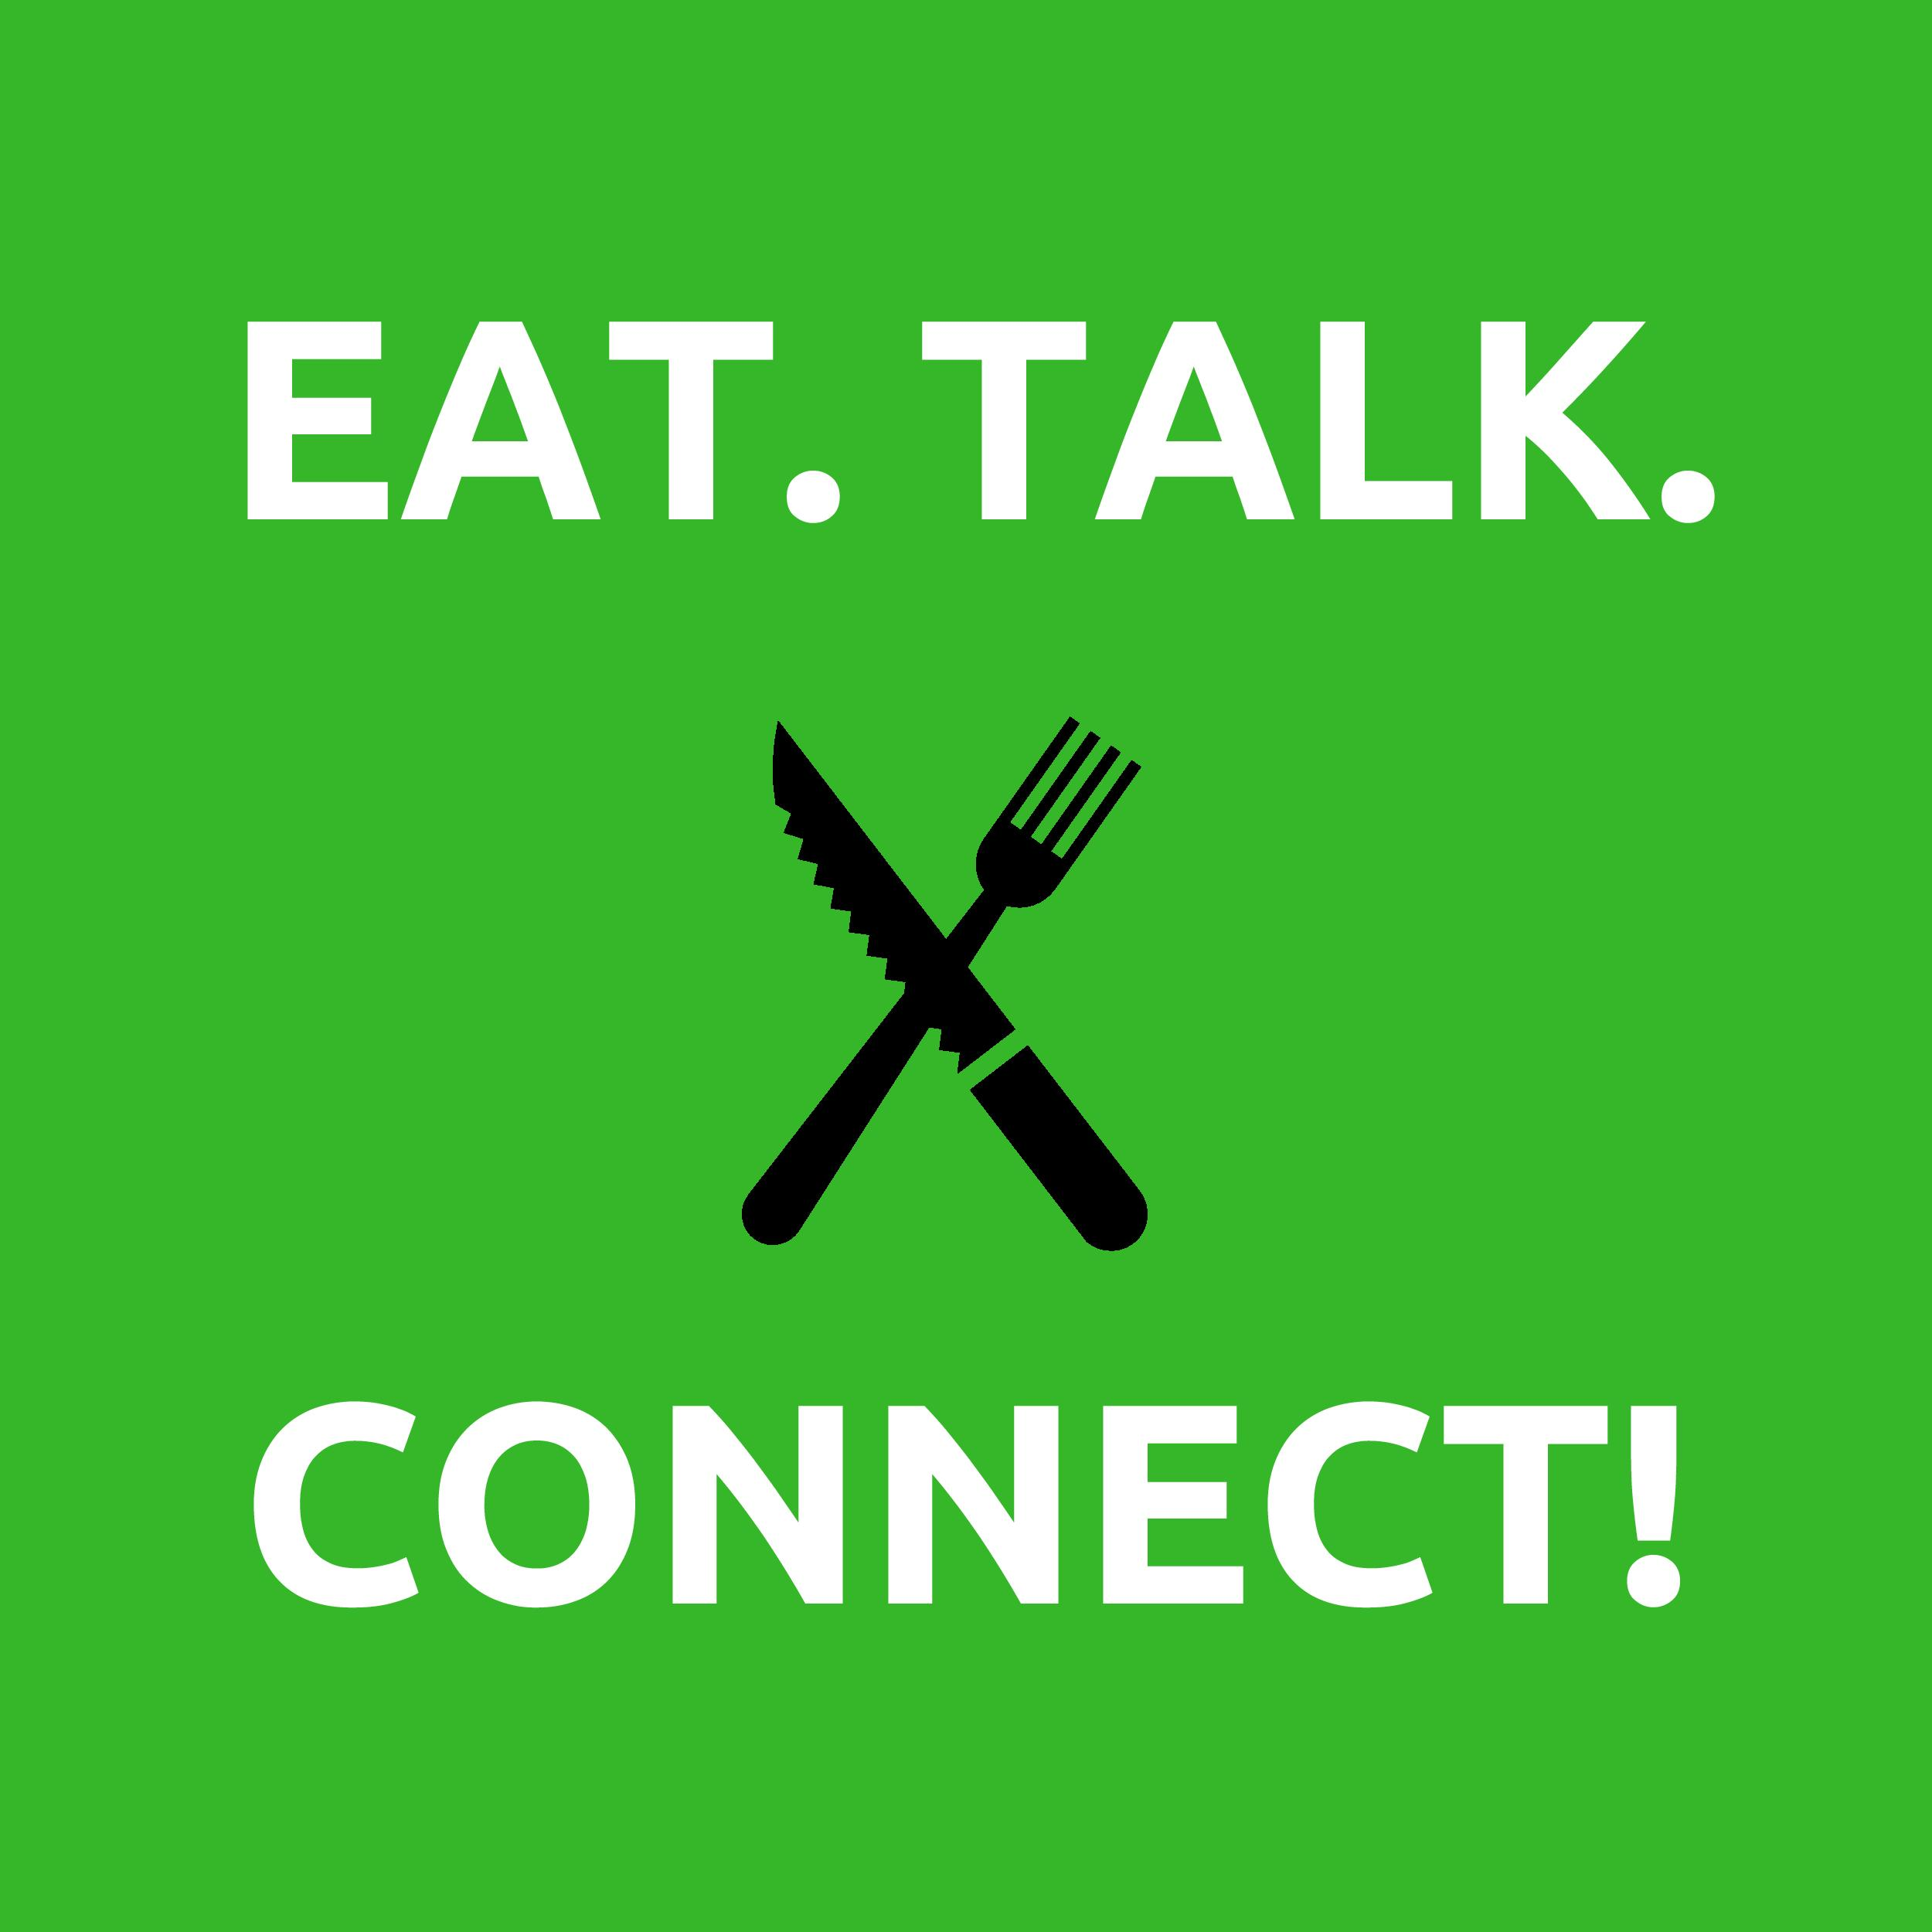 Eat. Talk. Connect!